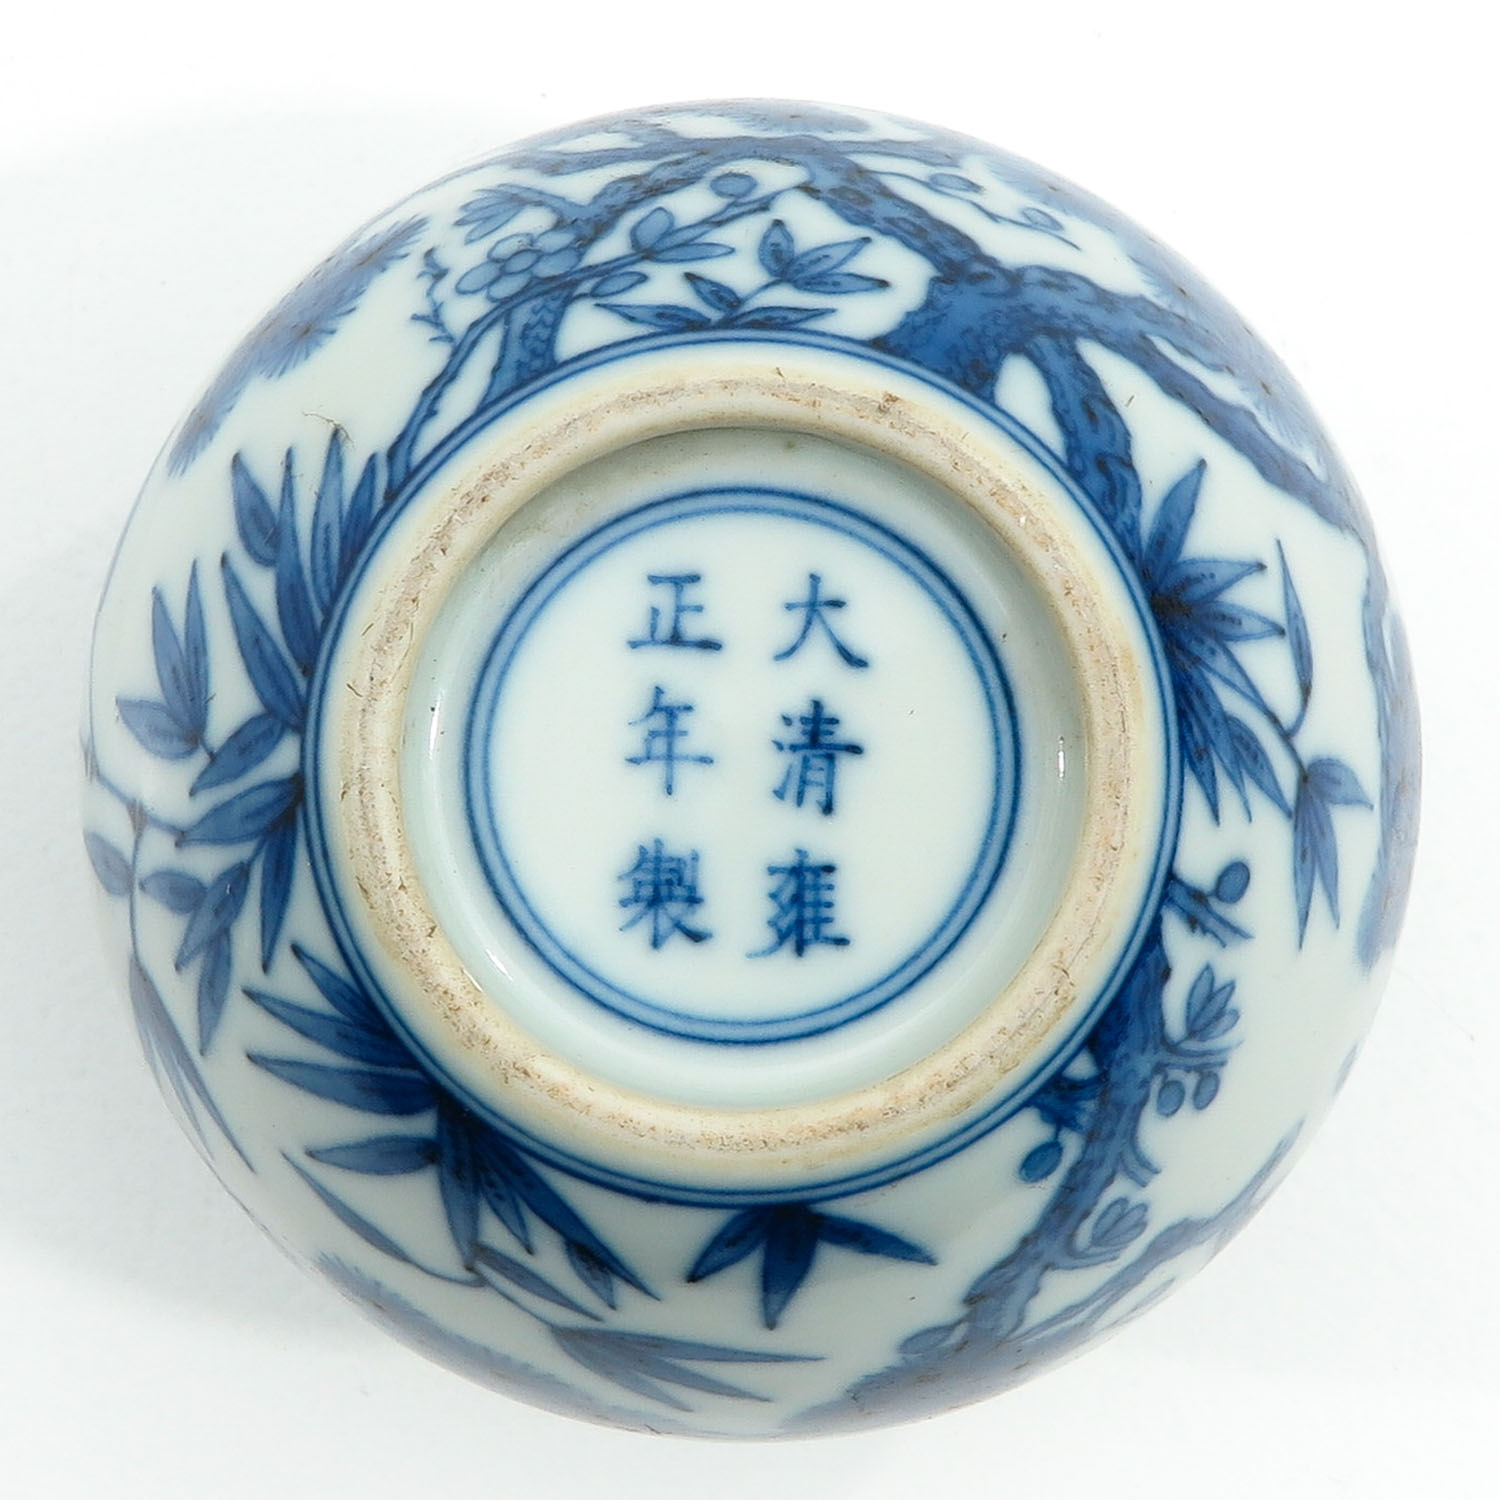 A Small Blue and White Vase - Image 6 of 9